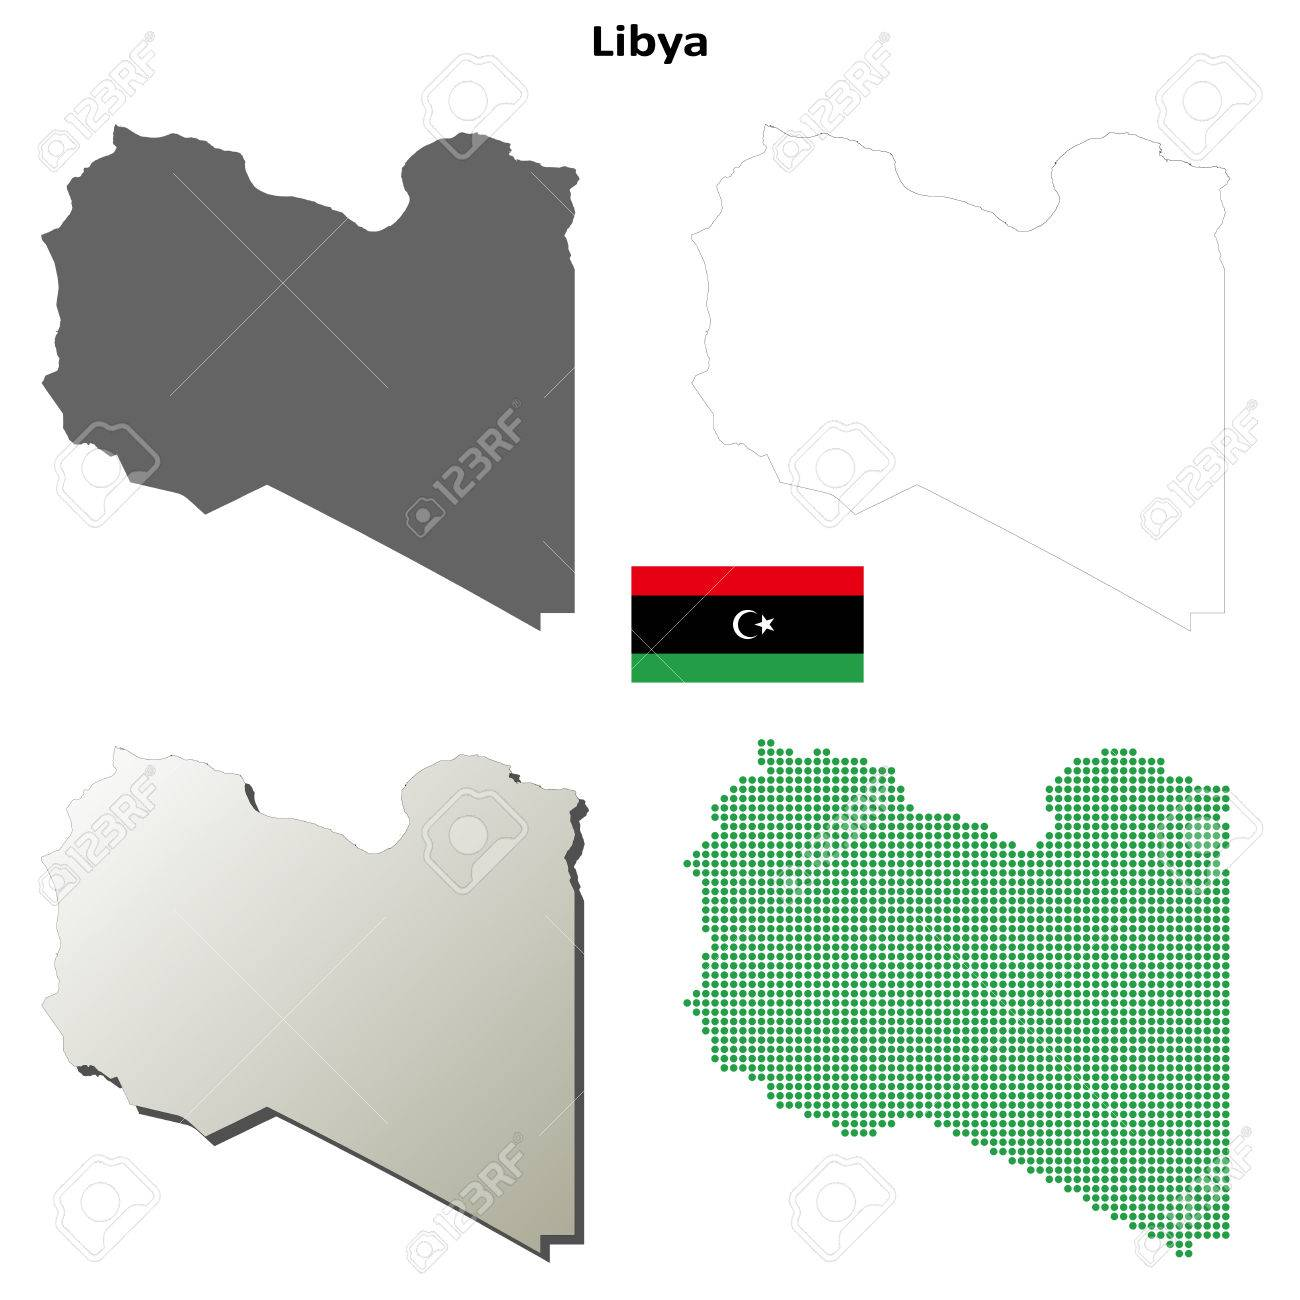 Libya Blank Detailed Vector Outline Map Set Royalty Free Cliparts - Libya blank map